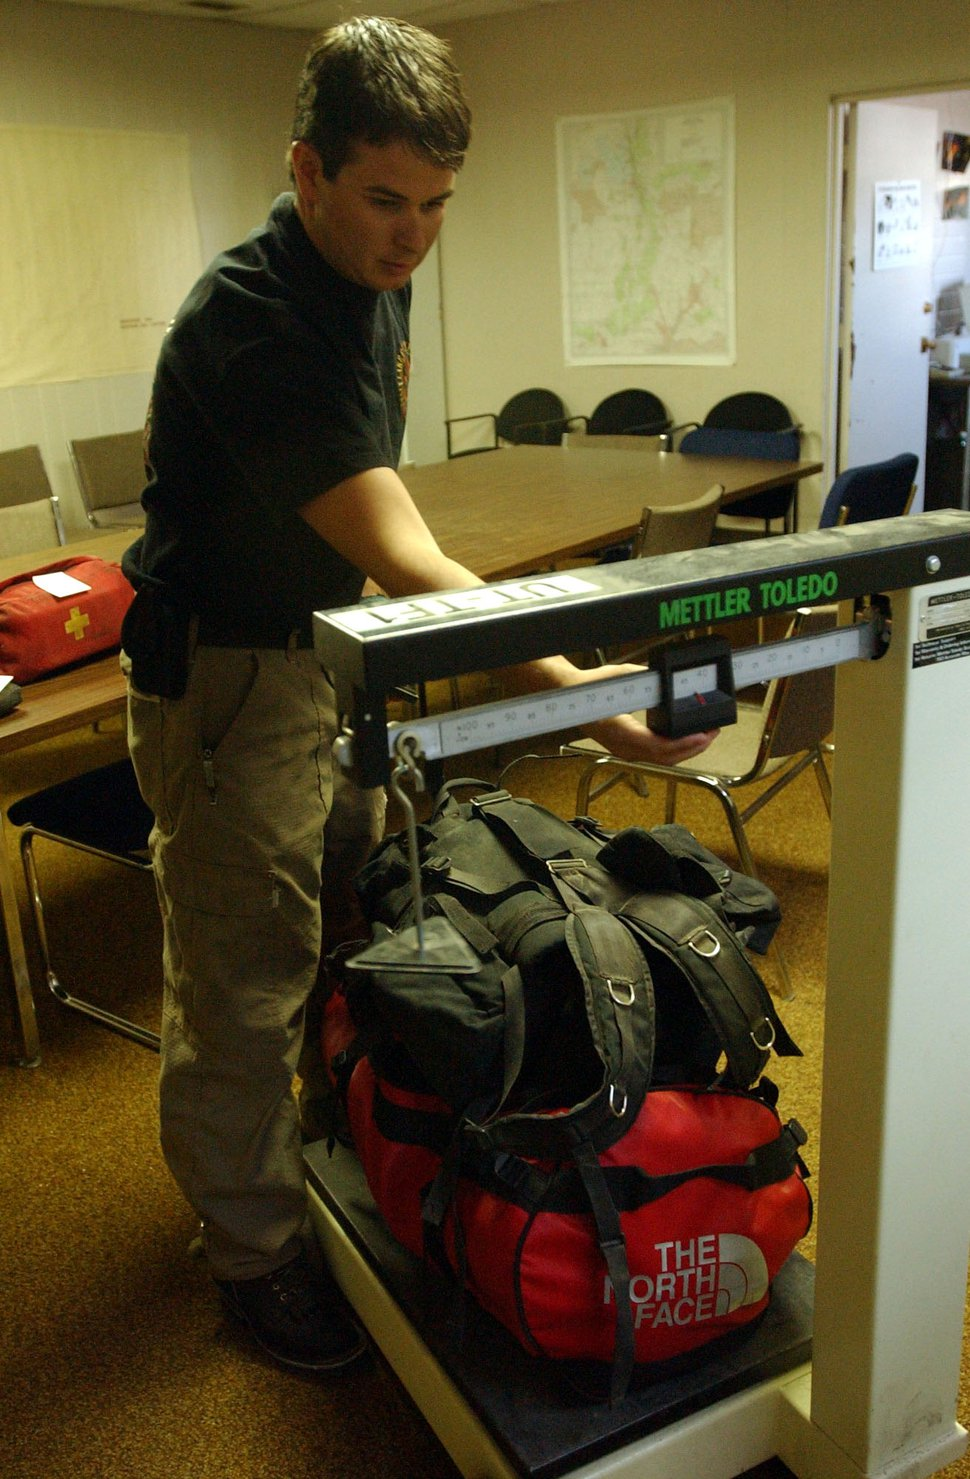 (Danny La | Tribune file photo) In this 2003 file photo, crew boss Matt Burchett weighs his equipment as Utah firefighters prepare to go to Texas to assist in the search for debris from the Space Shuttle Columbia. Burchett died on Aug. 13, 2018, while fighting wildfires in California.